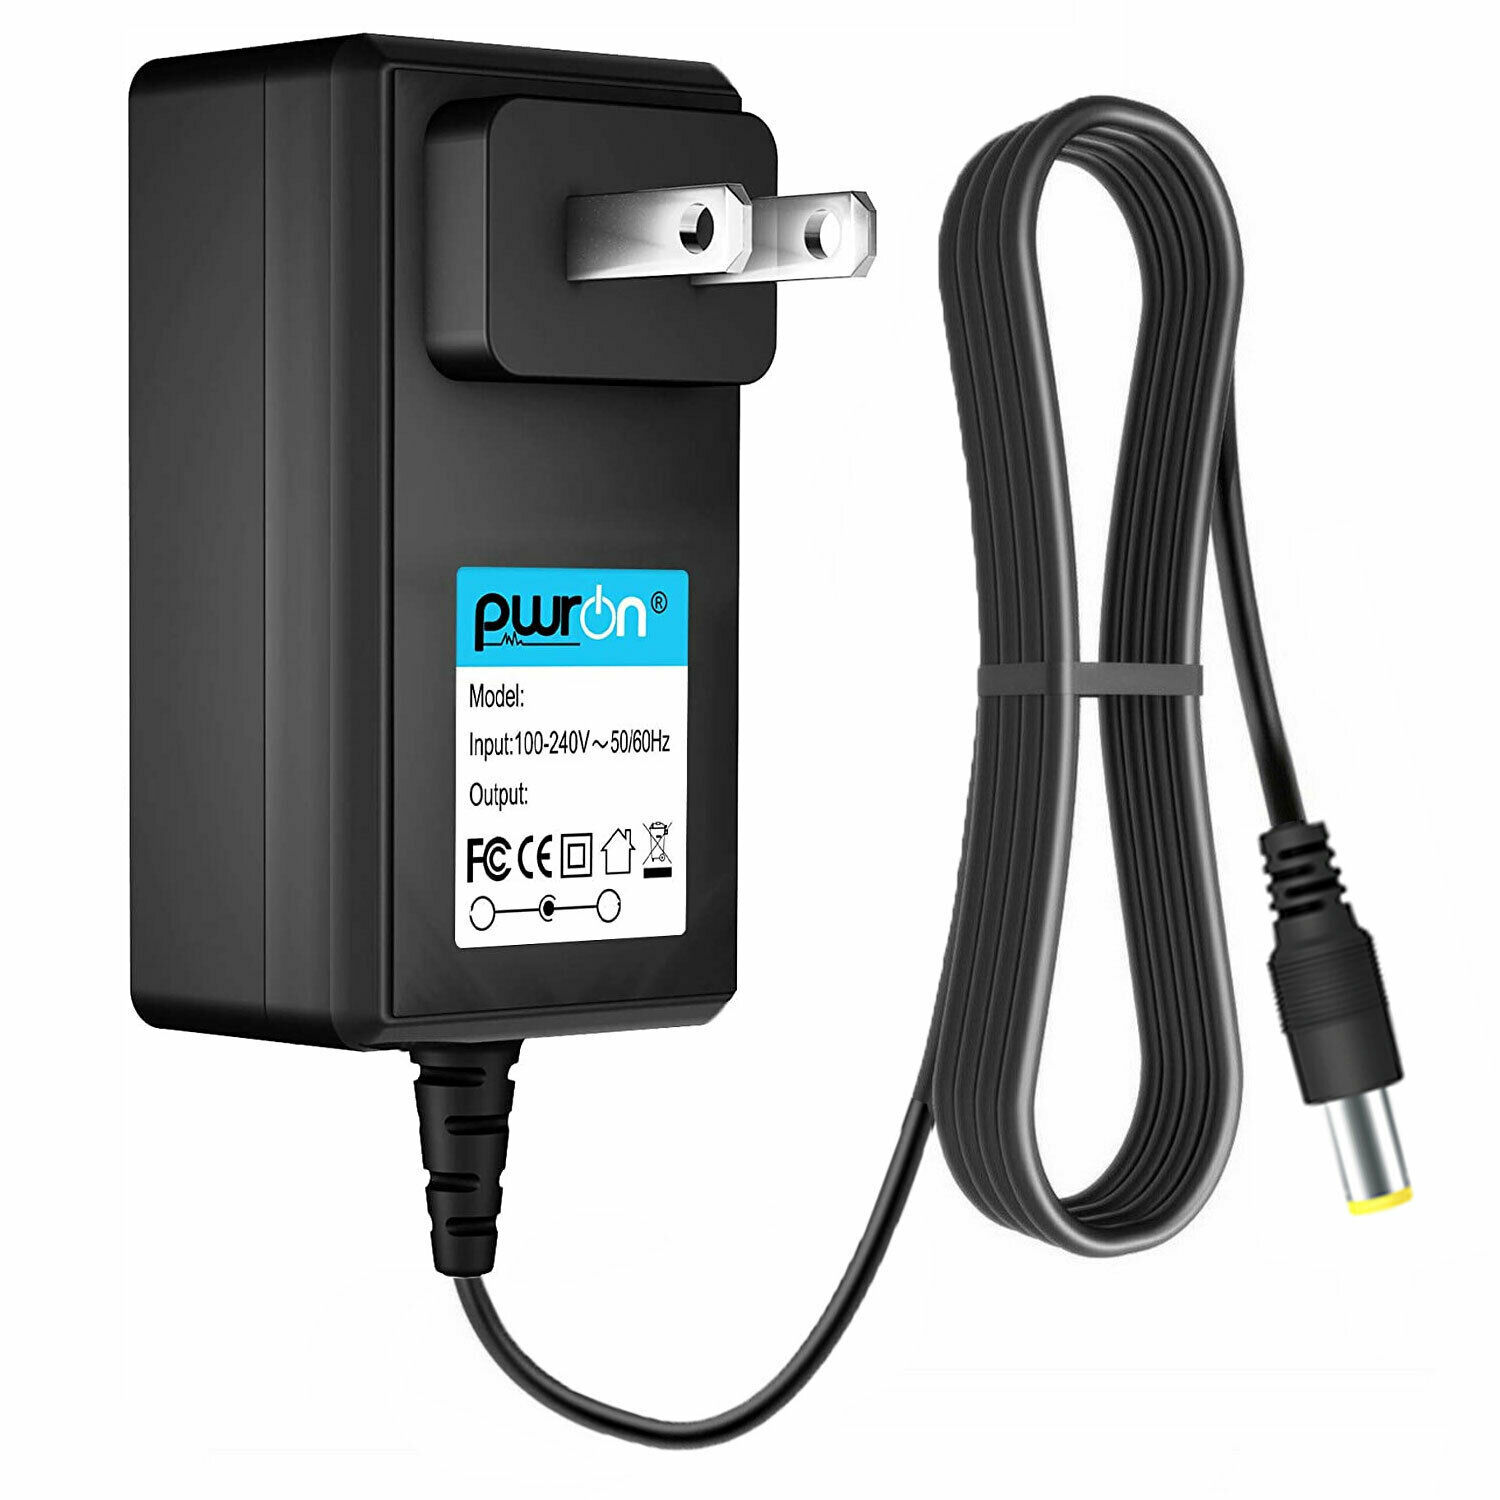 PwrON AC Adapter For Sony DPFD70 DPF-D70 Digital Frame Charger Power Supply PSU